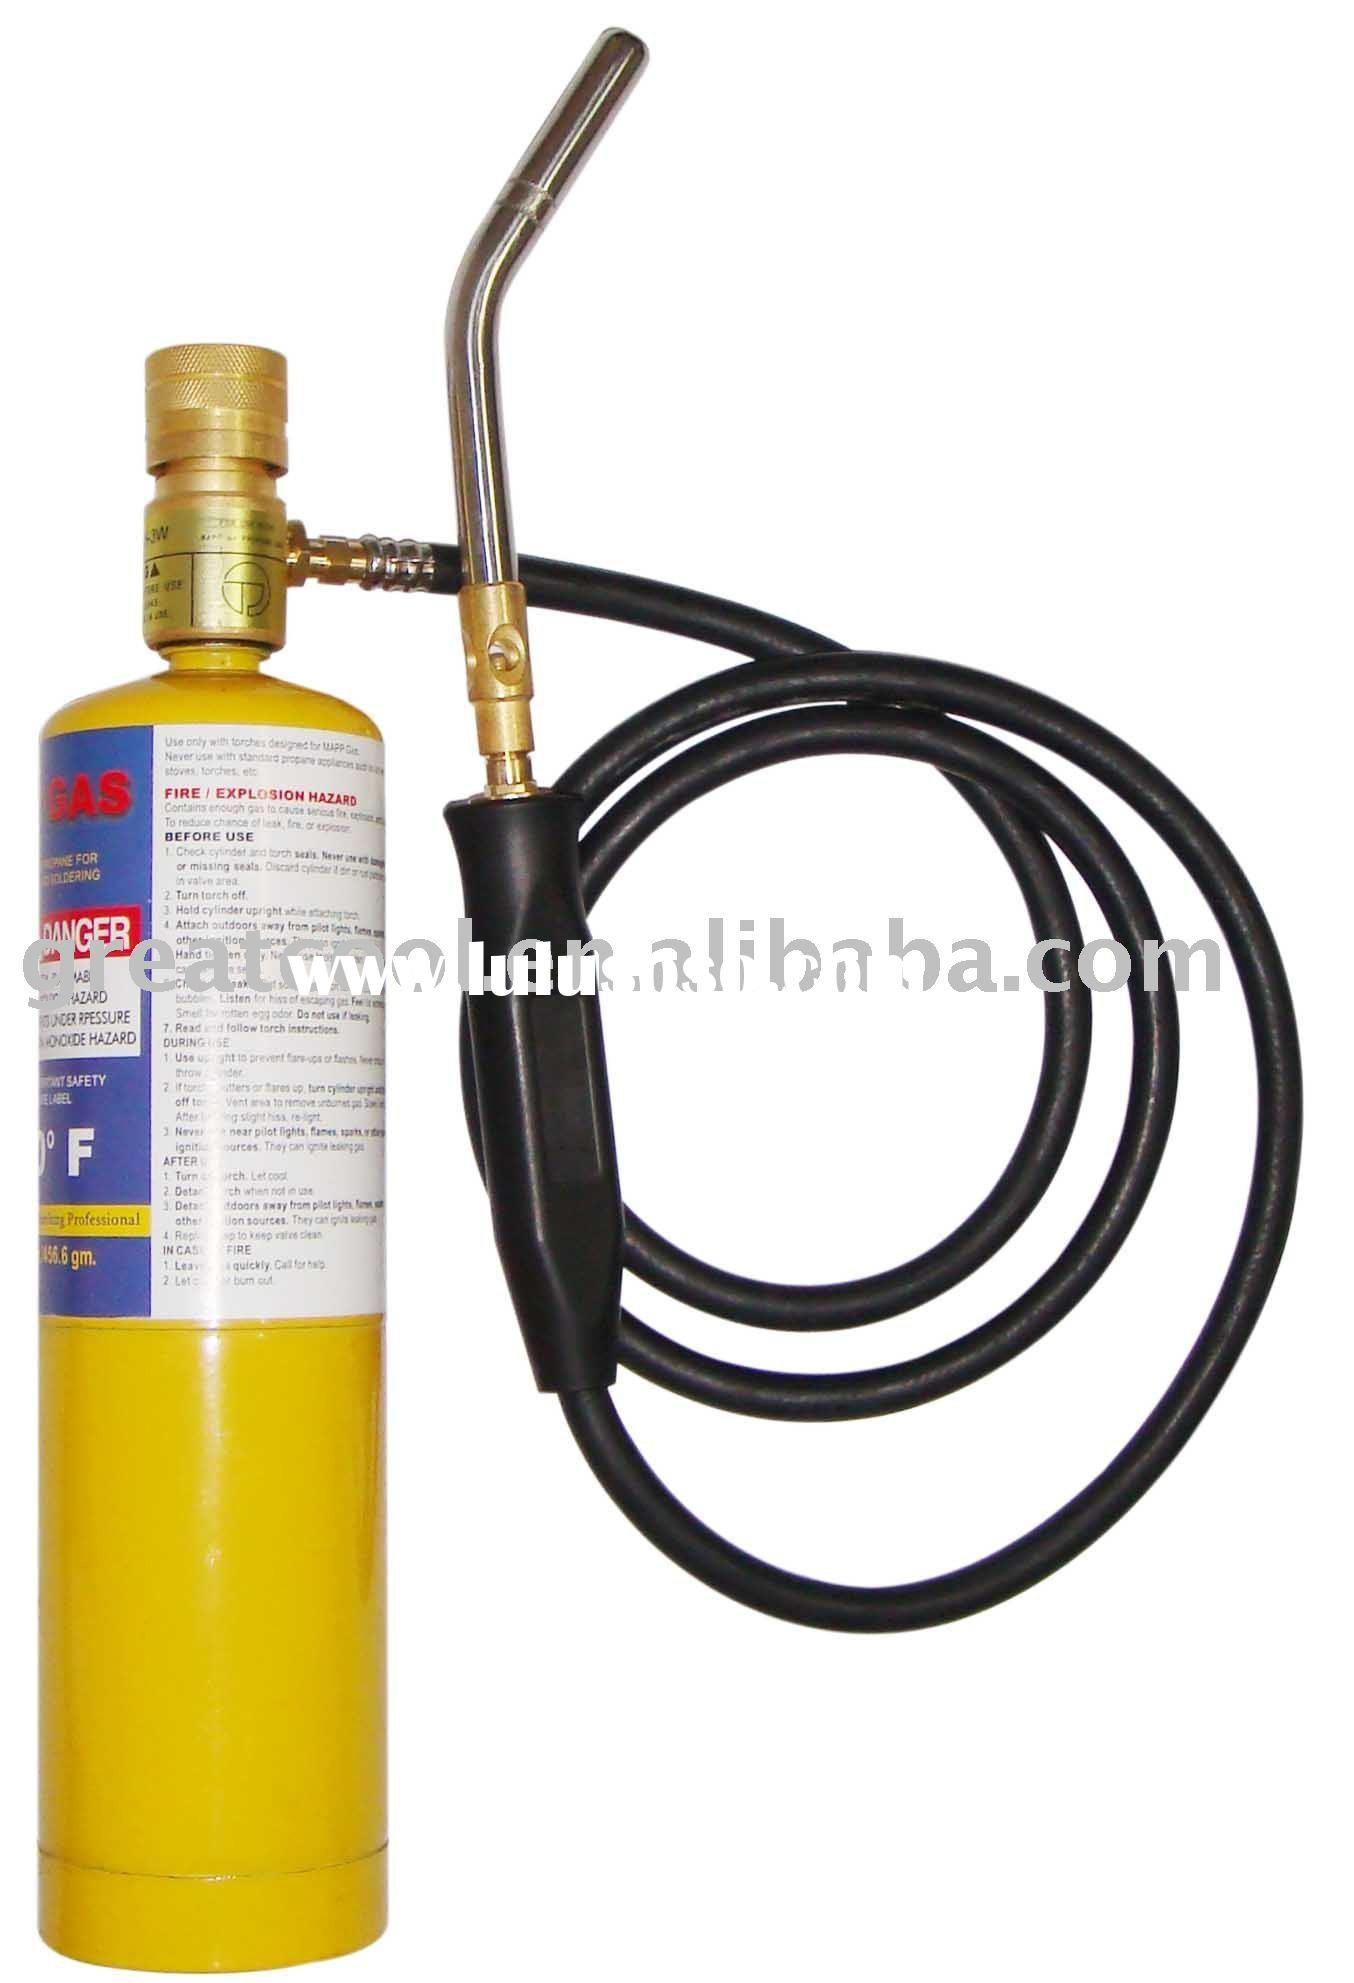 Mapp Gas Torch Mapp Gas physical and chemical property: 1.Actual Burning